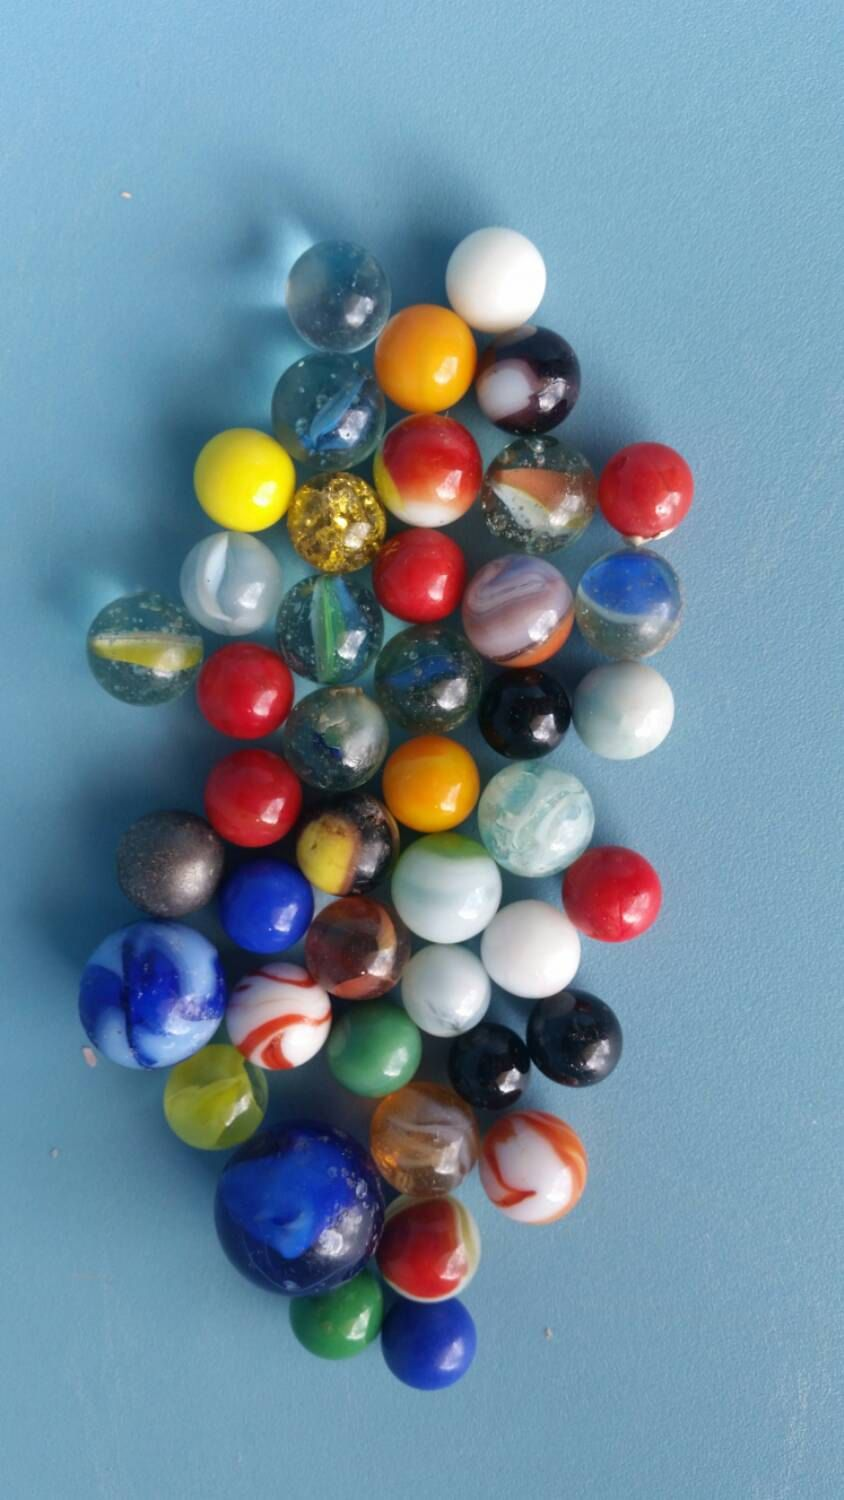 50 Vintage Marbles from 1950s, 1960s, 1970s / Marble Games